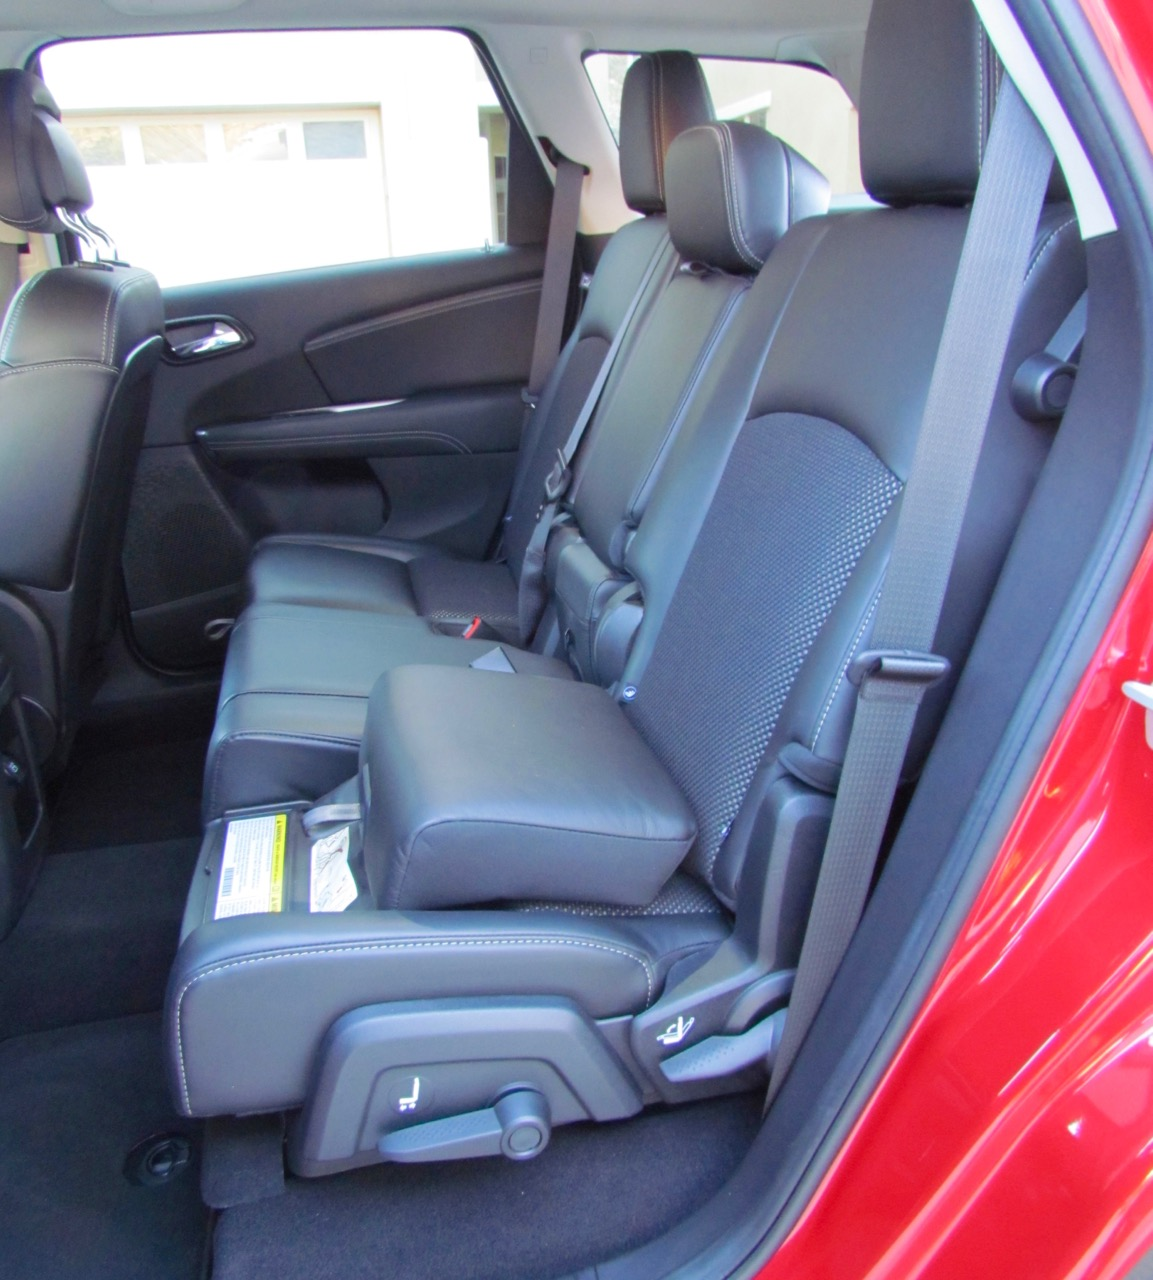 Built-in booster seats in the second row